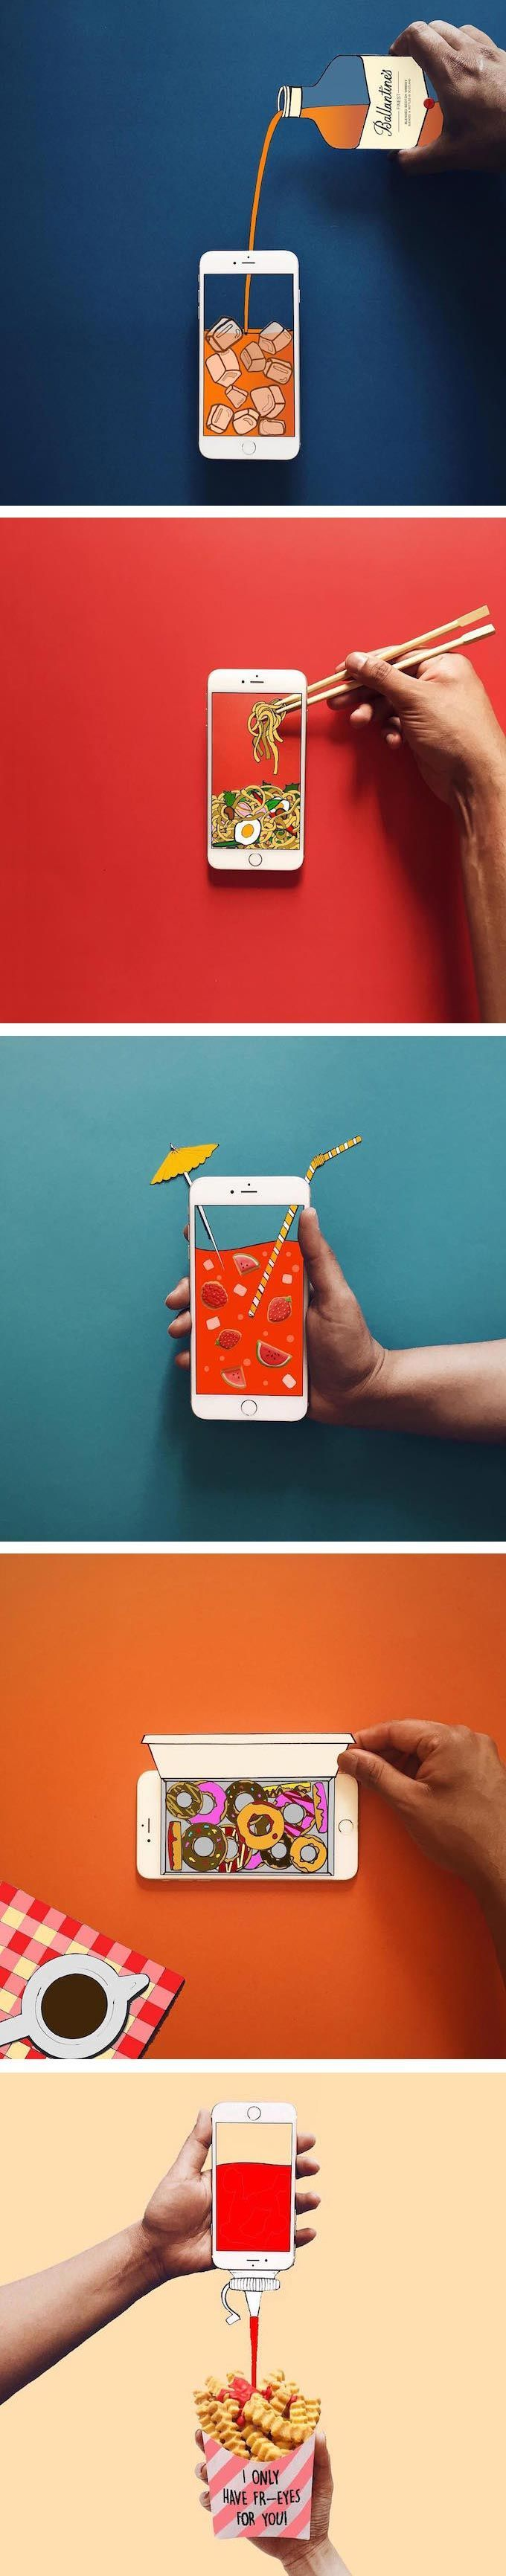 Anshuman Ghosh creates a quirky world using his iPhone. With seamless illusions,...